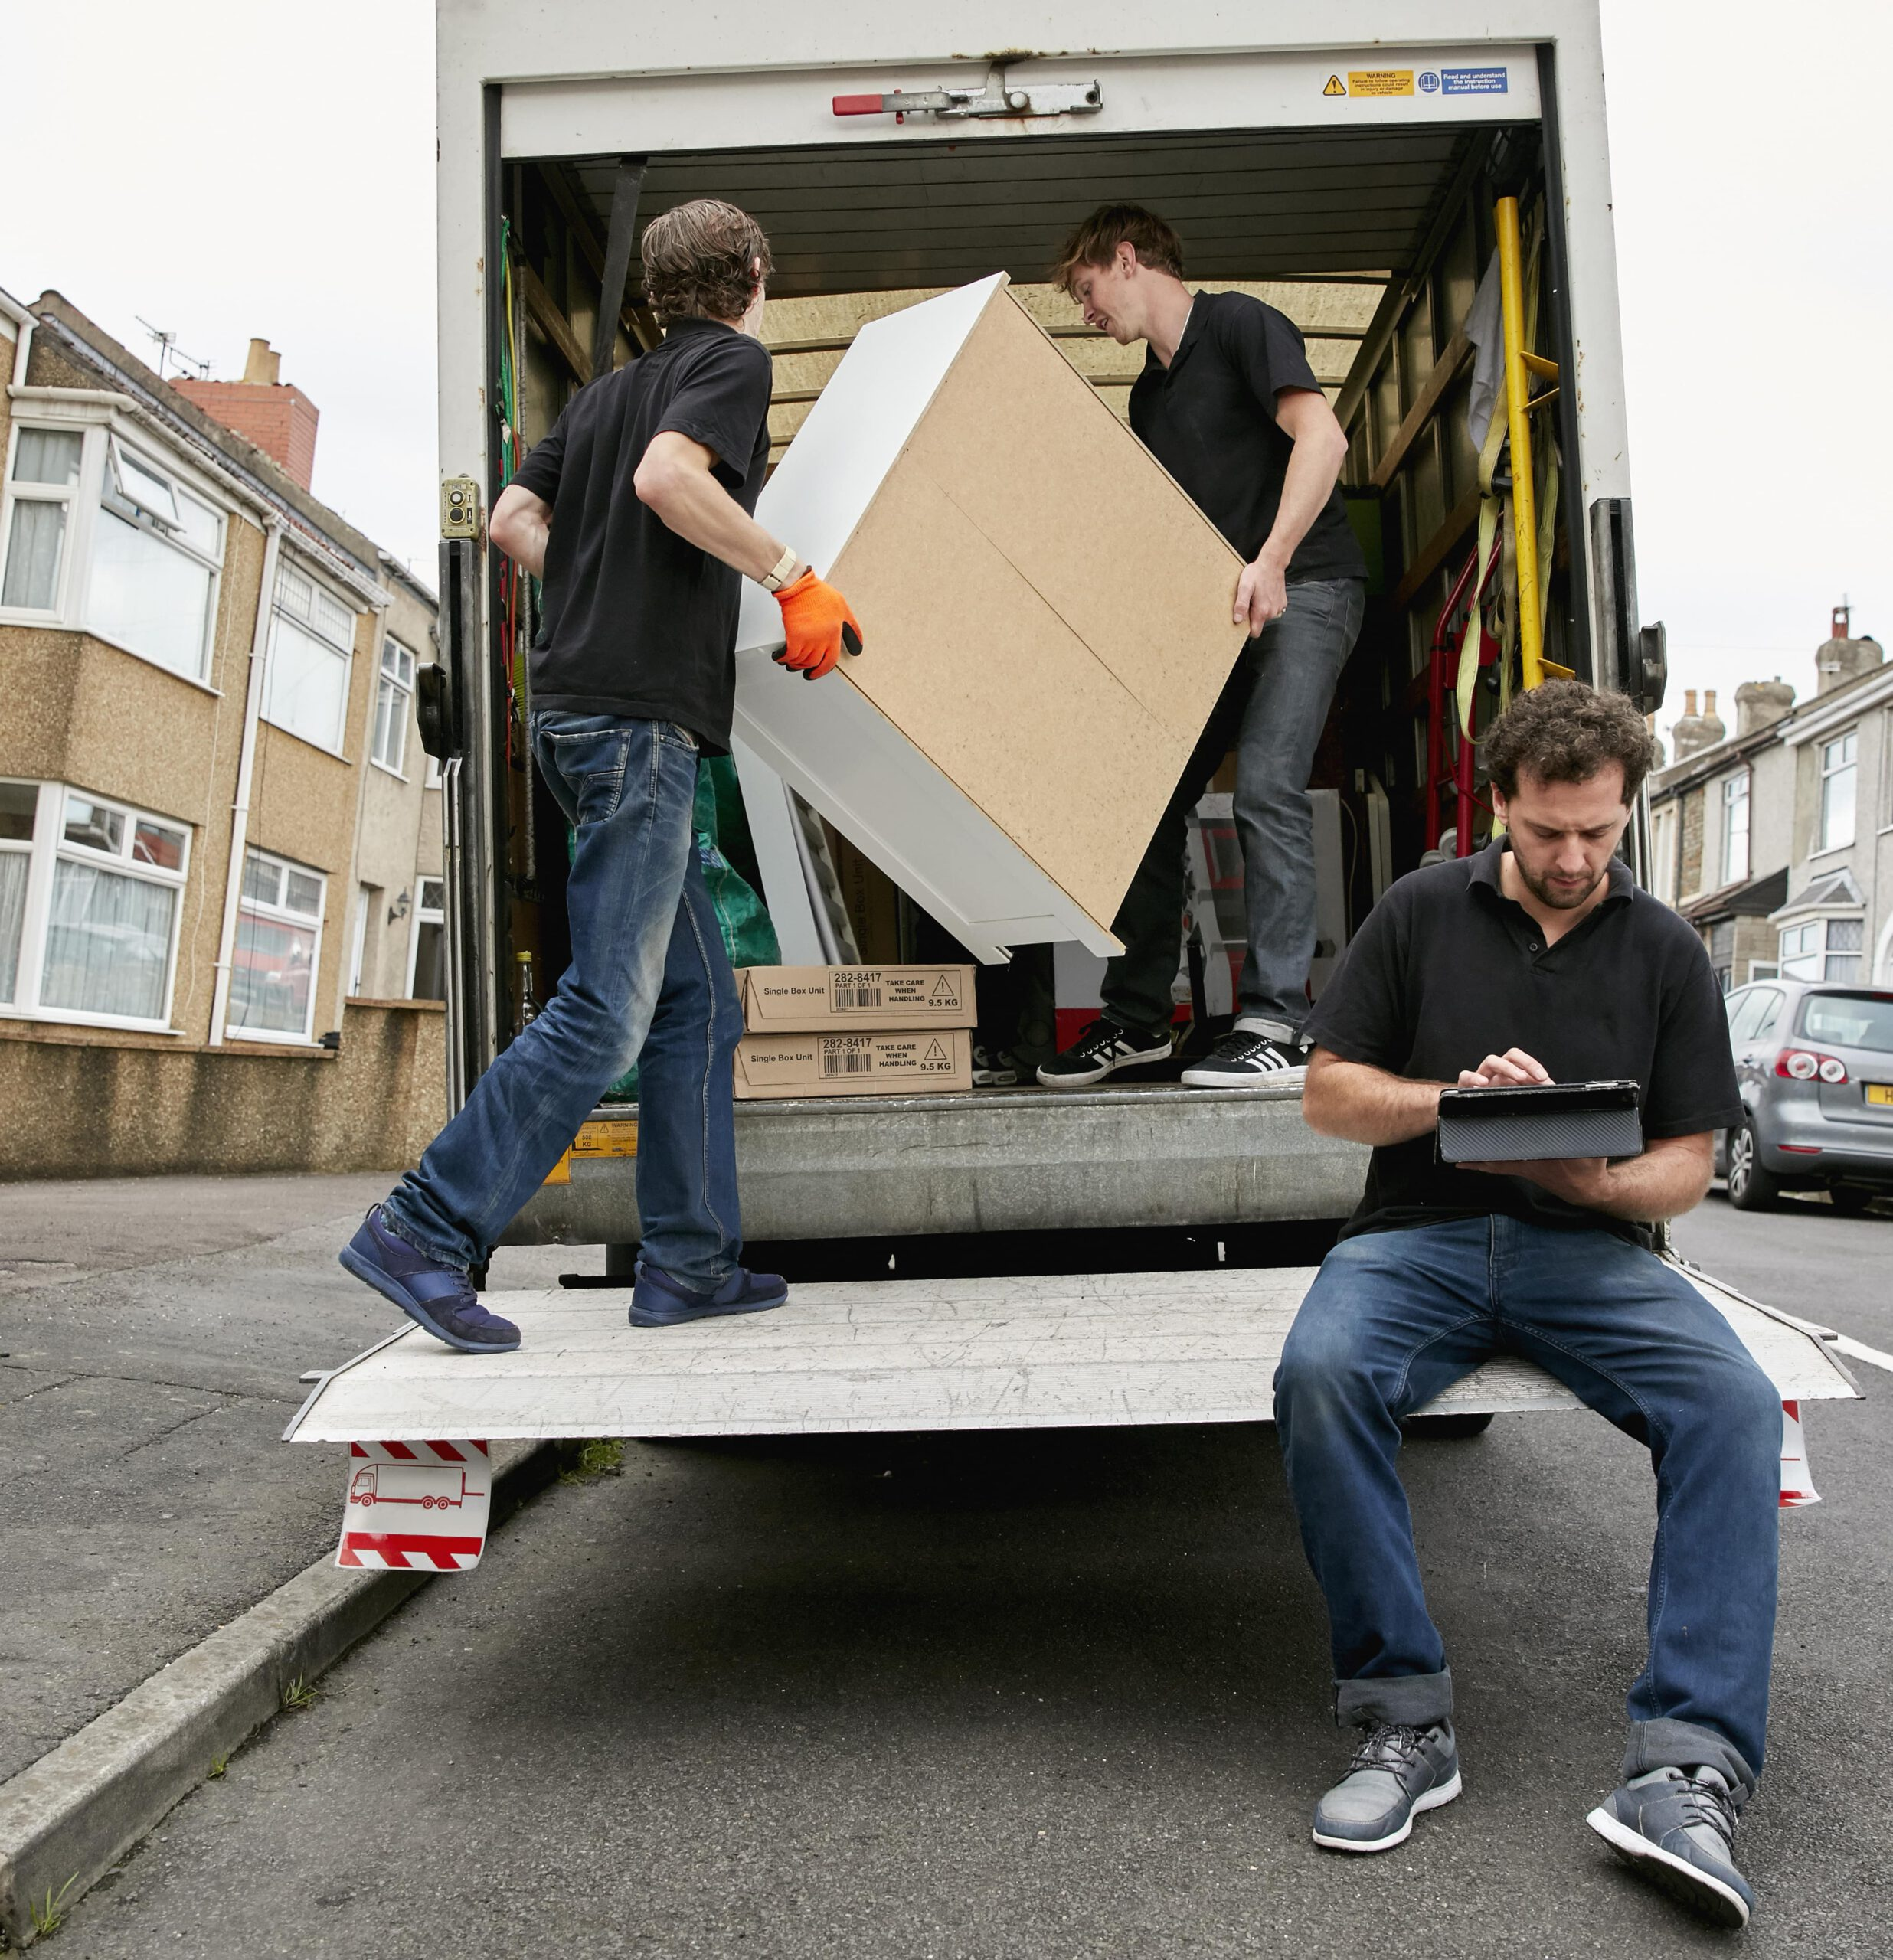 removals companies edinburgh